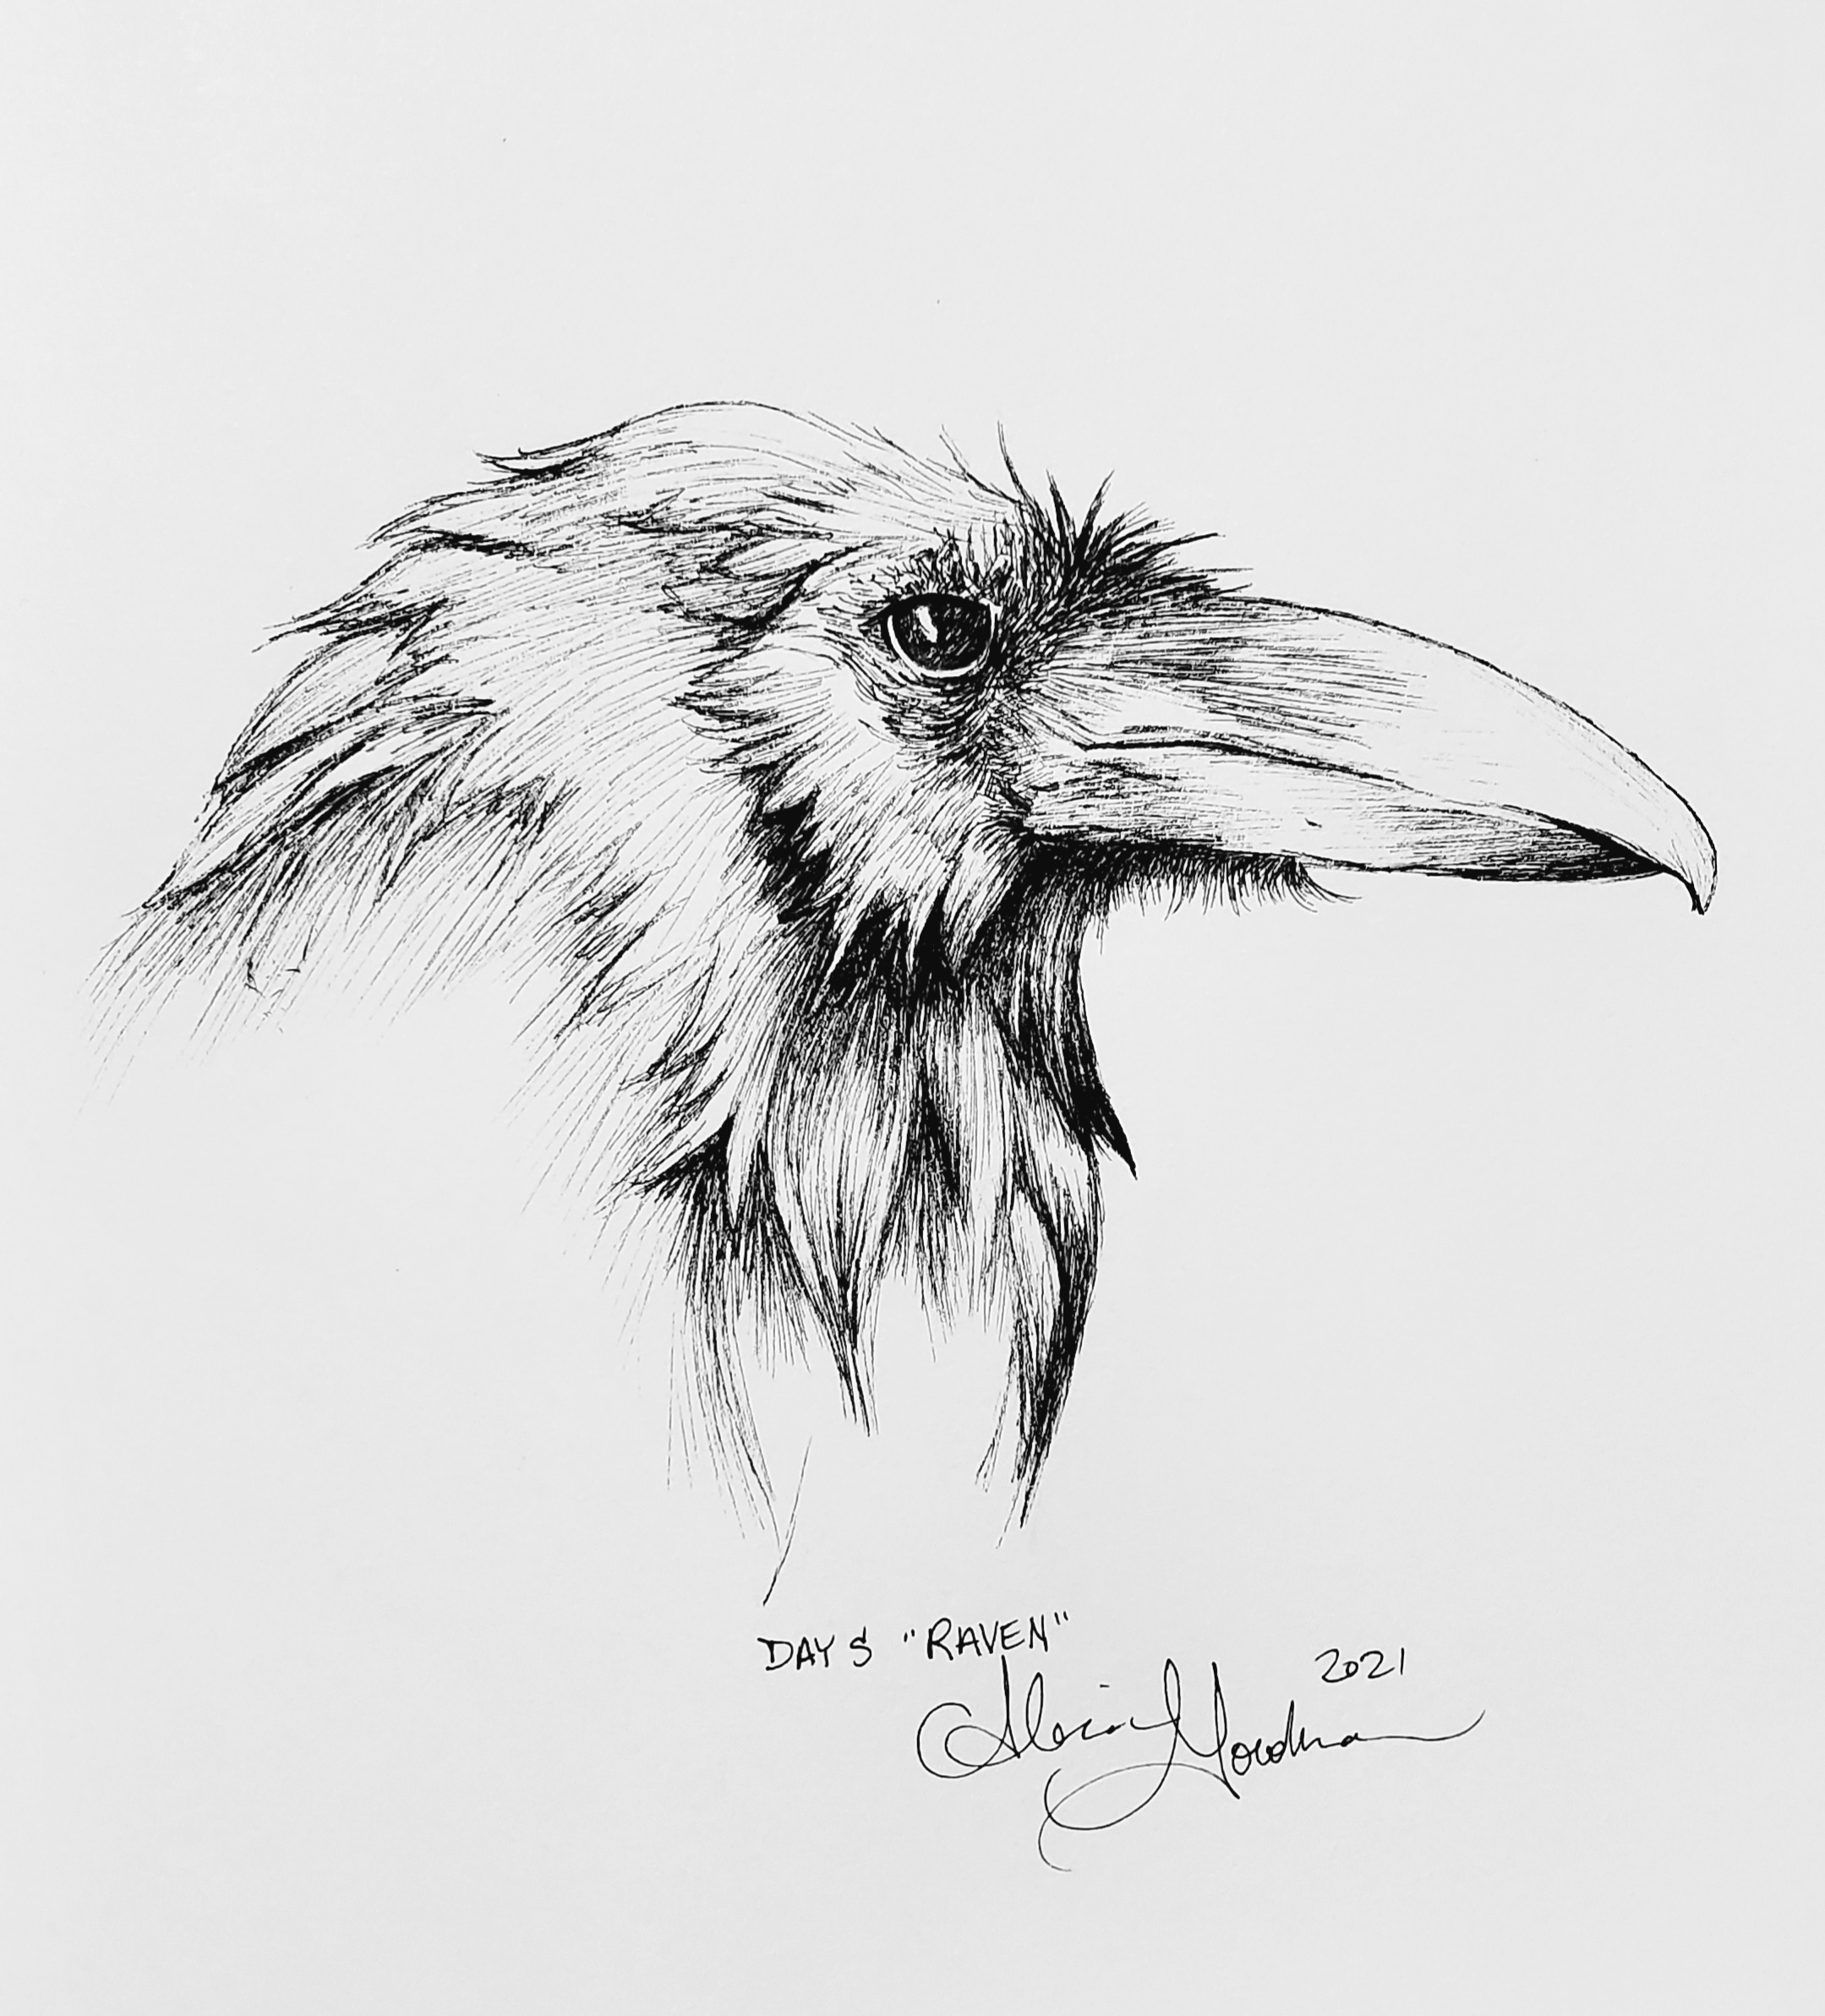 Raven head ink drawing by alecia goodman copyright 2021 to present